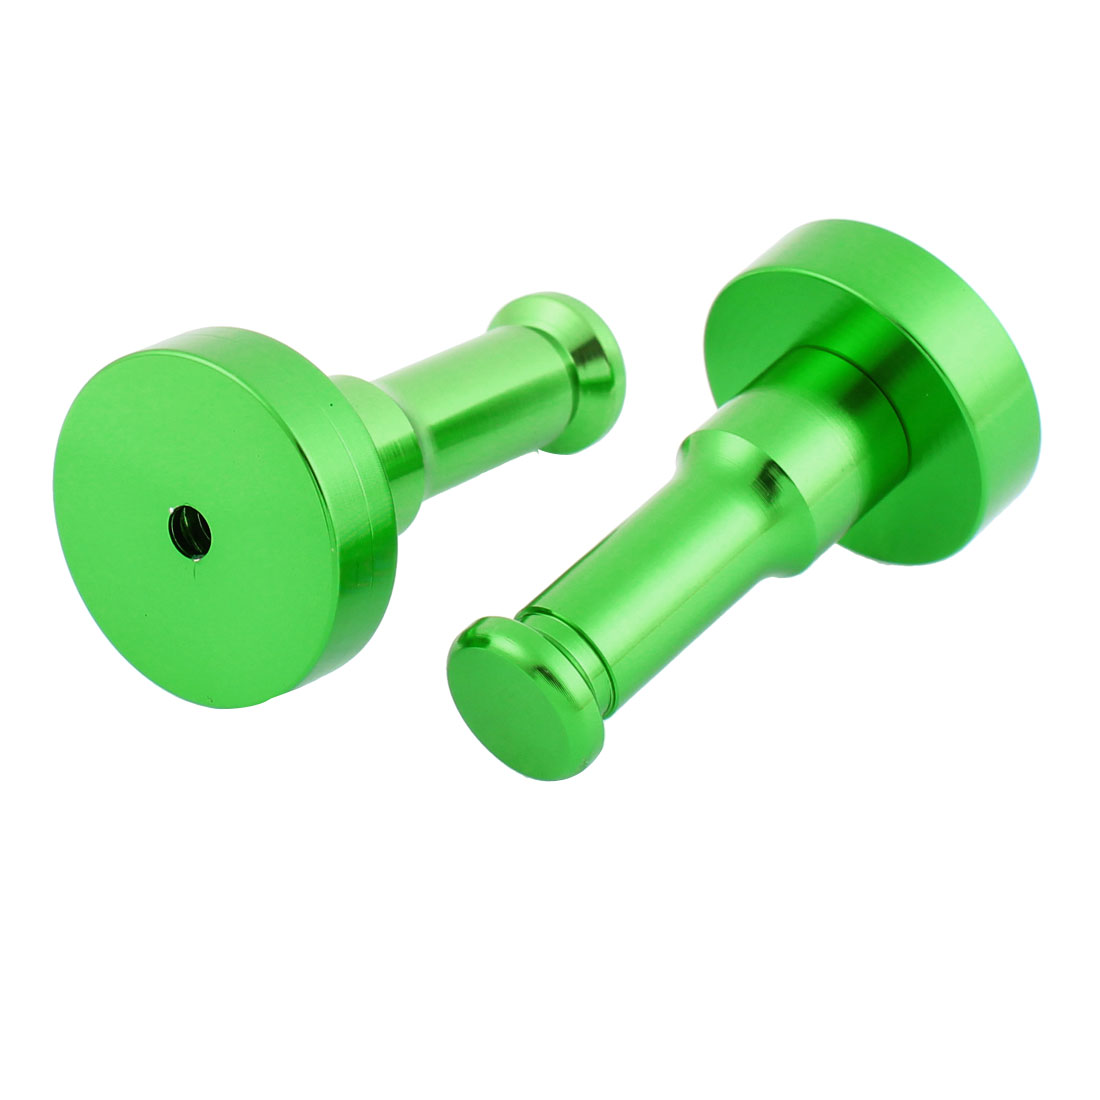 Bedroom Bathroom Towel Clothes Coat Aluminum Holder Hook Wall Hanger Green 2pcs